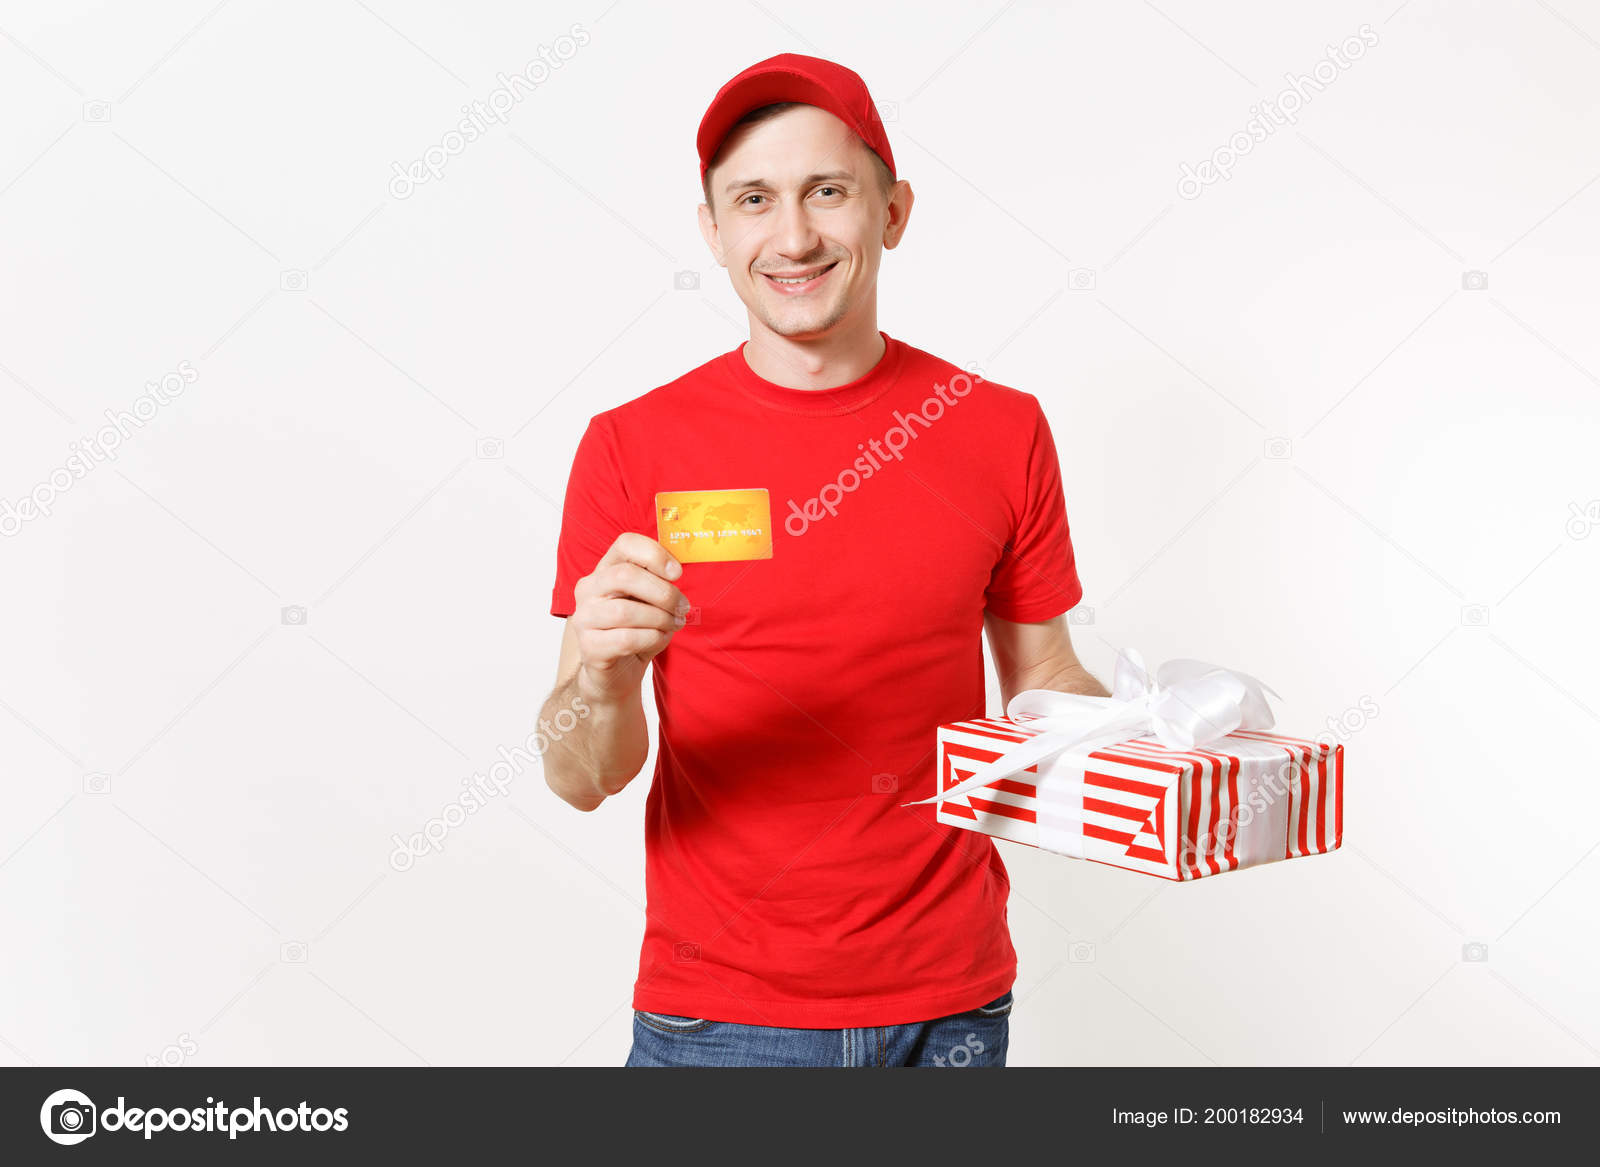 ca3be064d8979 Delivery Man Red Uniform Isolated White Background Male Cap Shirt ...